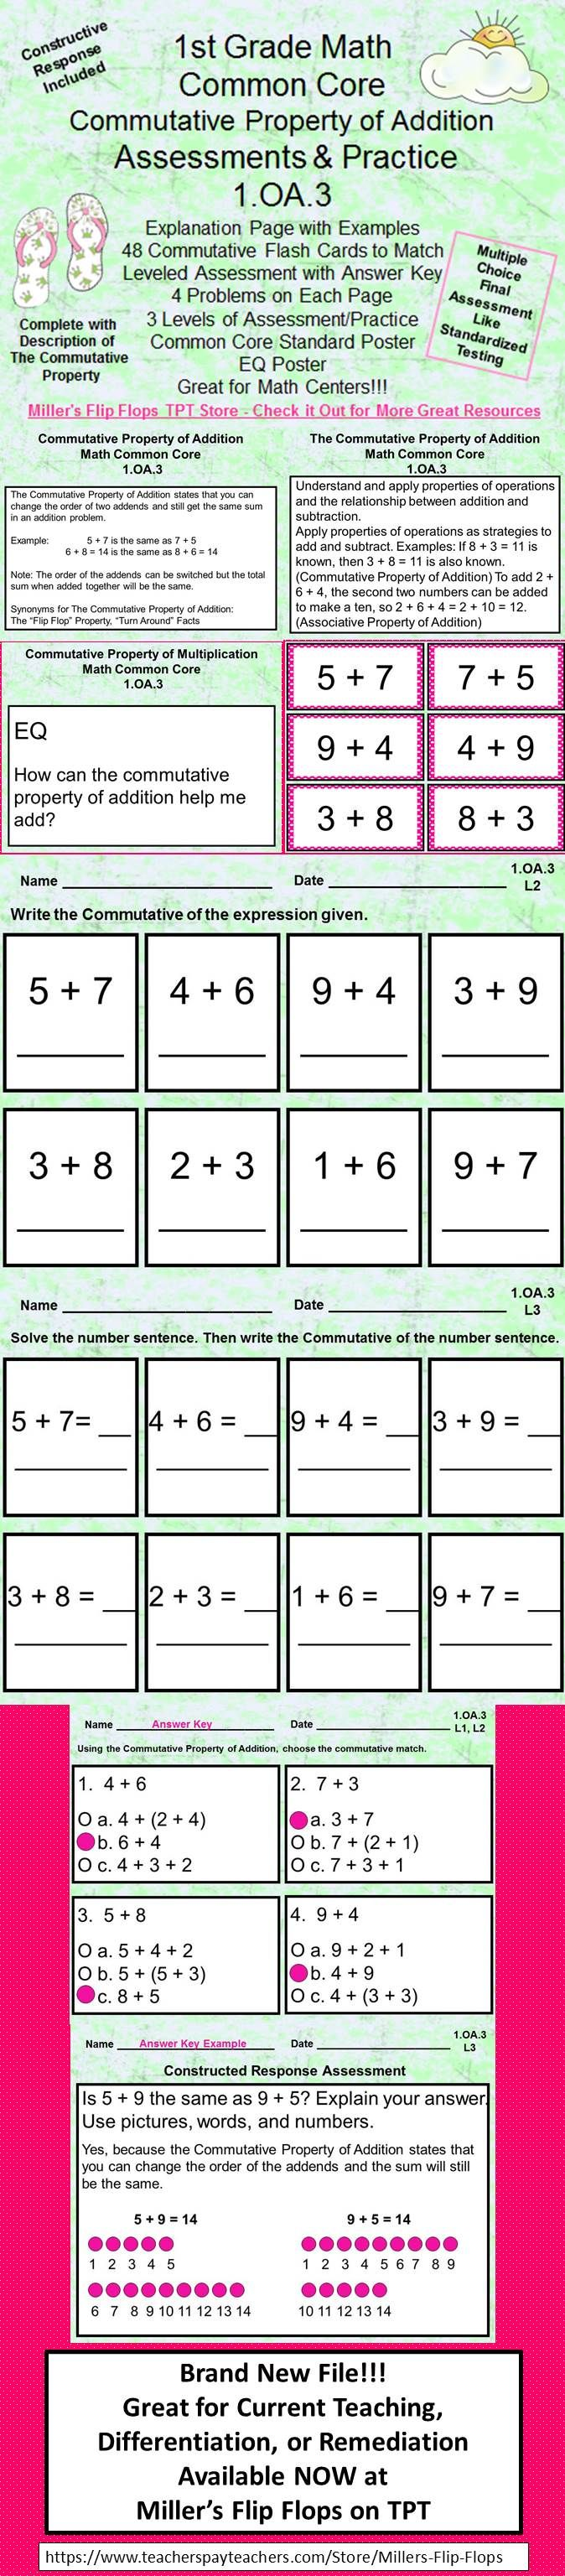 Brand New File!!! Commutative Property of Addition - 1.OA.3, Common Core Math Practice and Assessments. Includes: Explanation Page with Examples, 48 Commutative Flash Cards to Match, Leveled Assessments with Answer Key, 4 Problems on Each Page, 3 Levels of Assessment/Practice, Constructed Response Assessment, Common Core Standard Poster, EQ Poster. GREAT for initial teaching, practice in centers, remediation, and assessment. Check it out! Karyn Miller, 3rd Grade Math Teacher-Miller's Flip…